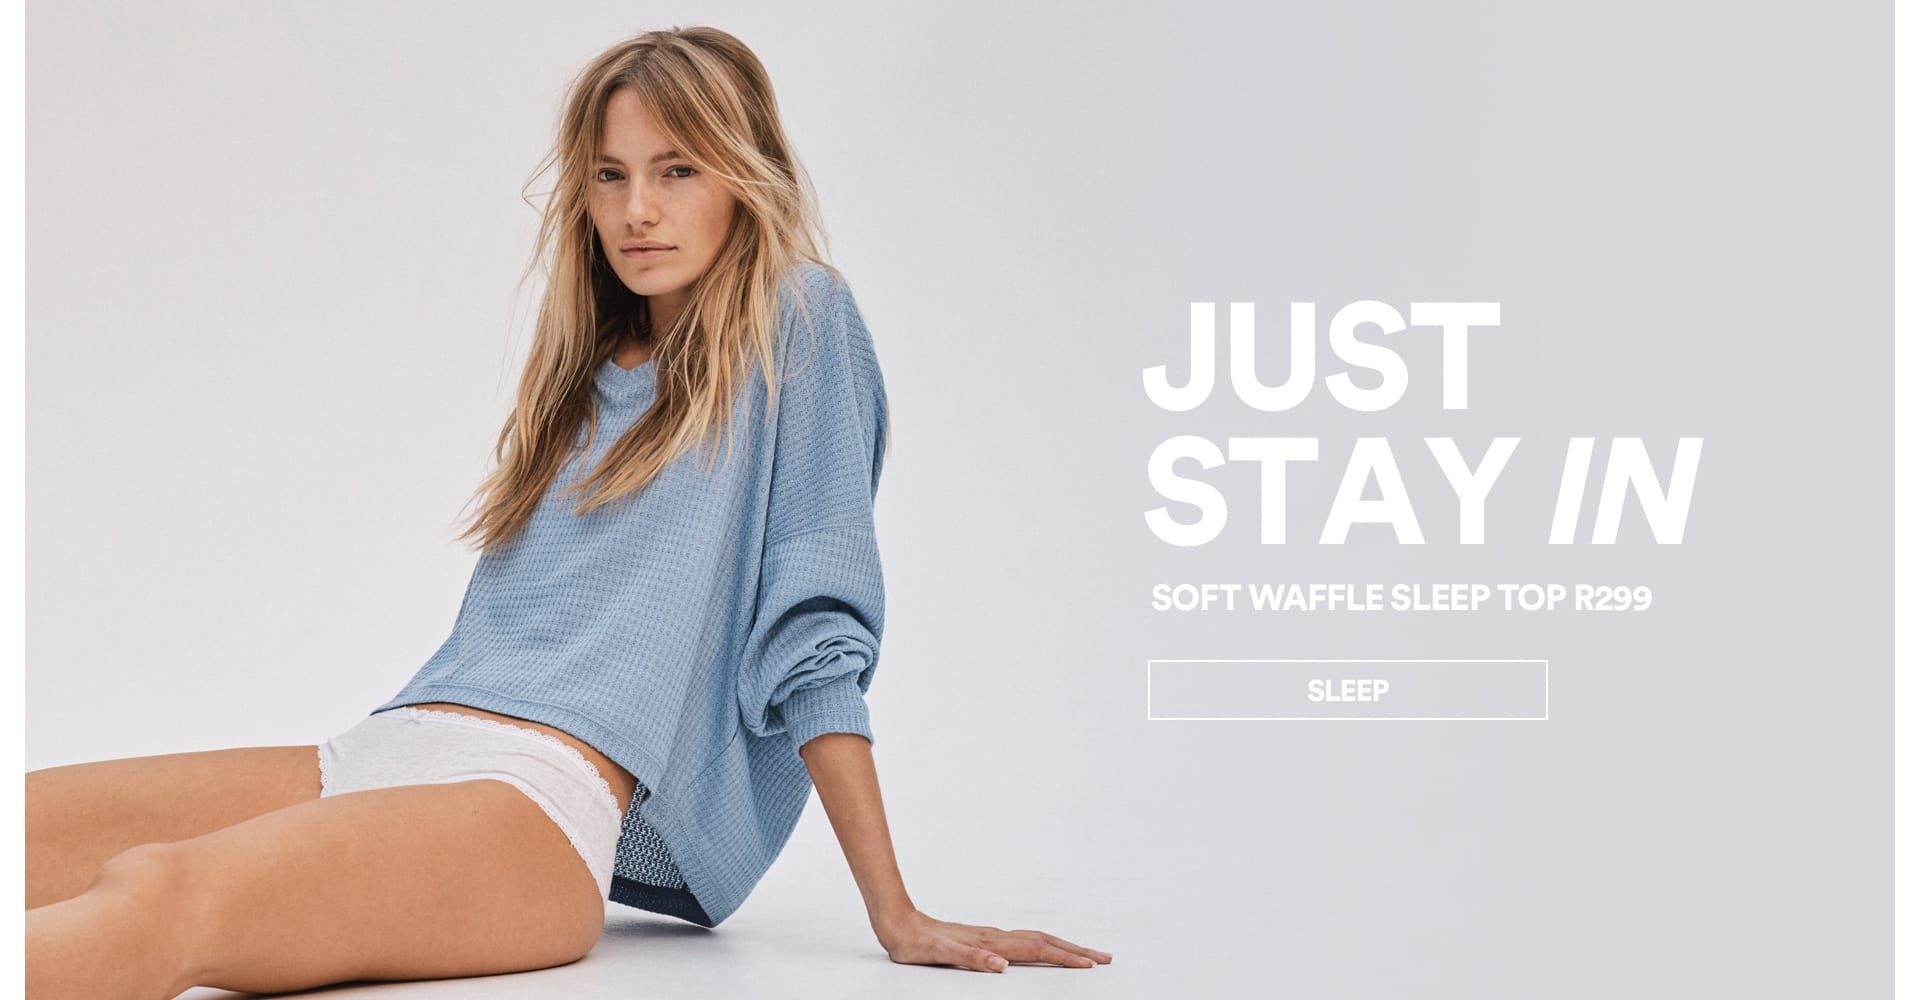 JUST STAY IN, Soft waffle sleep top R299